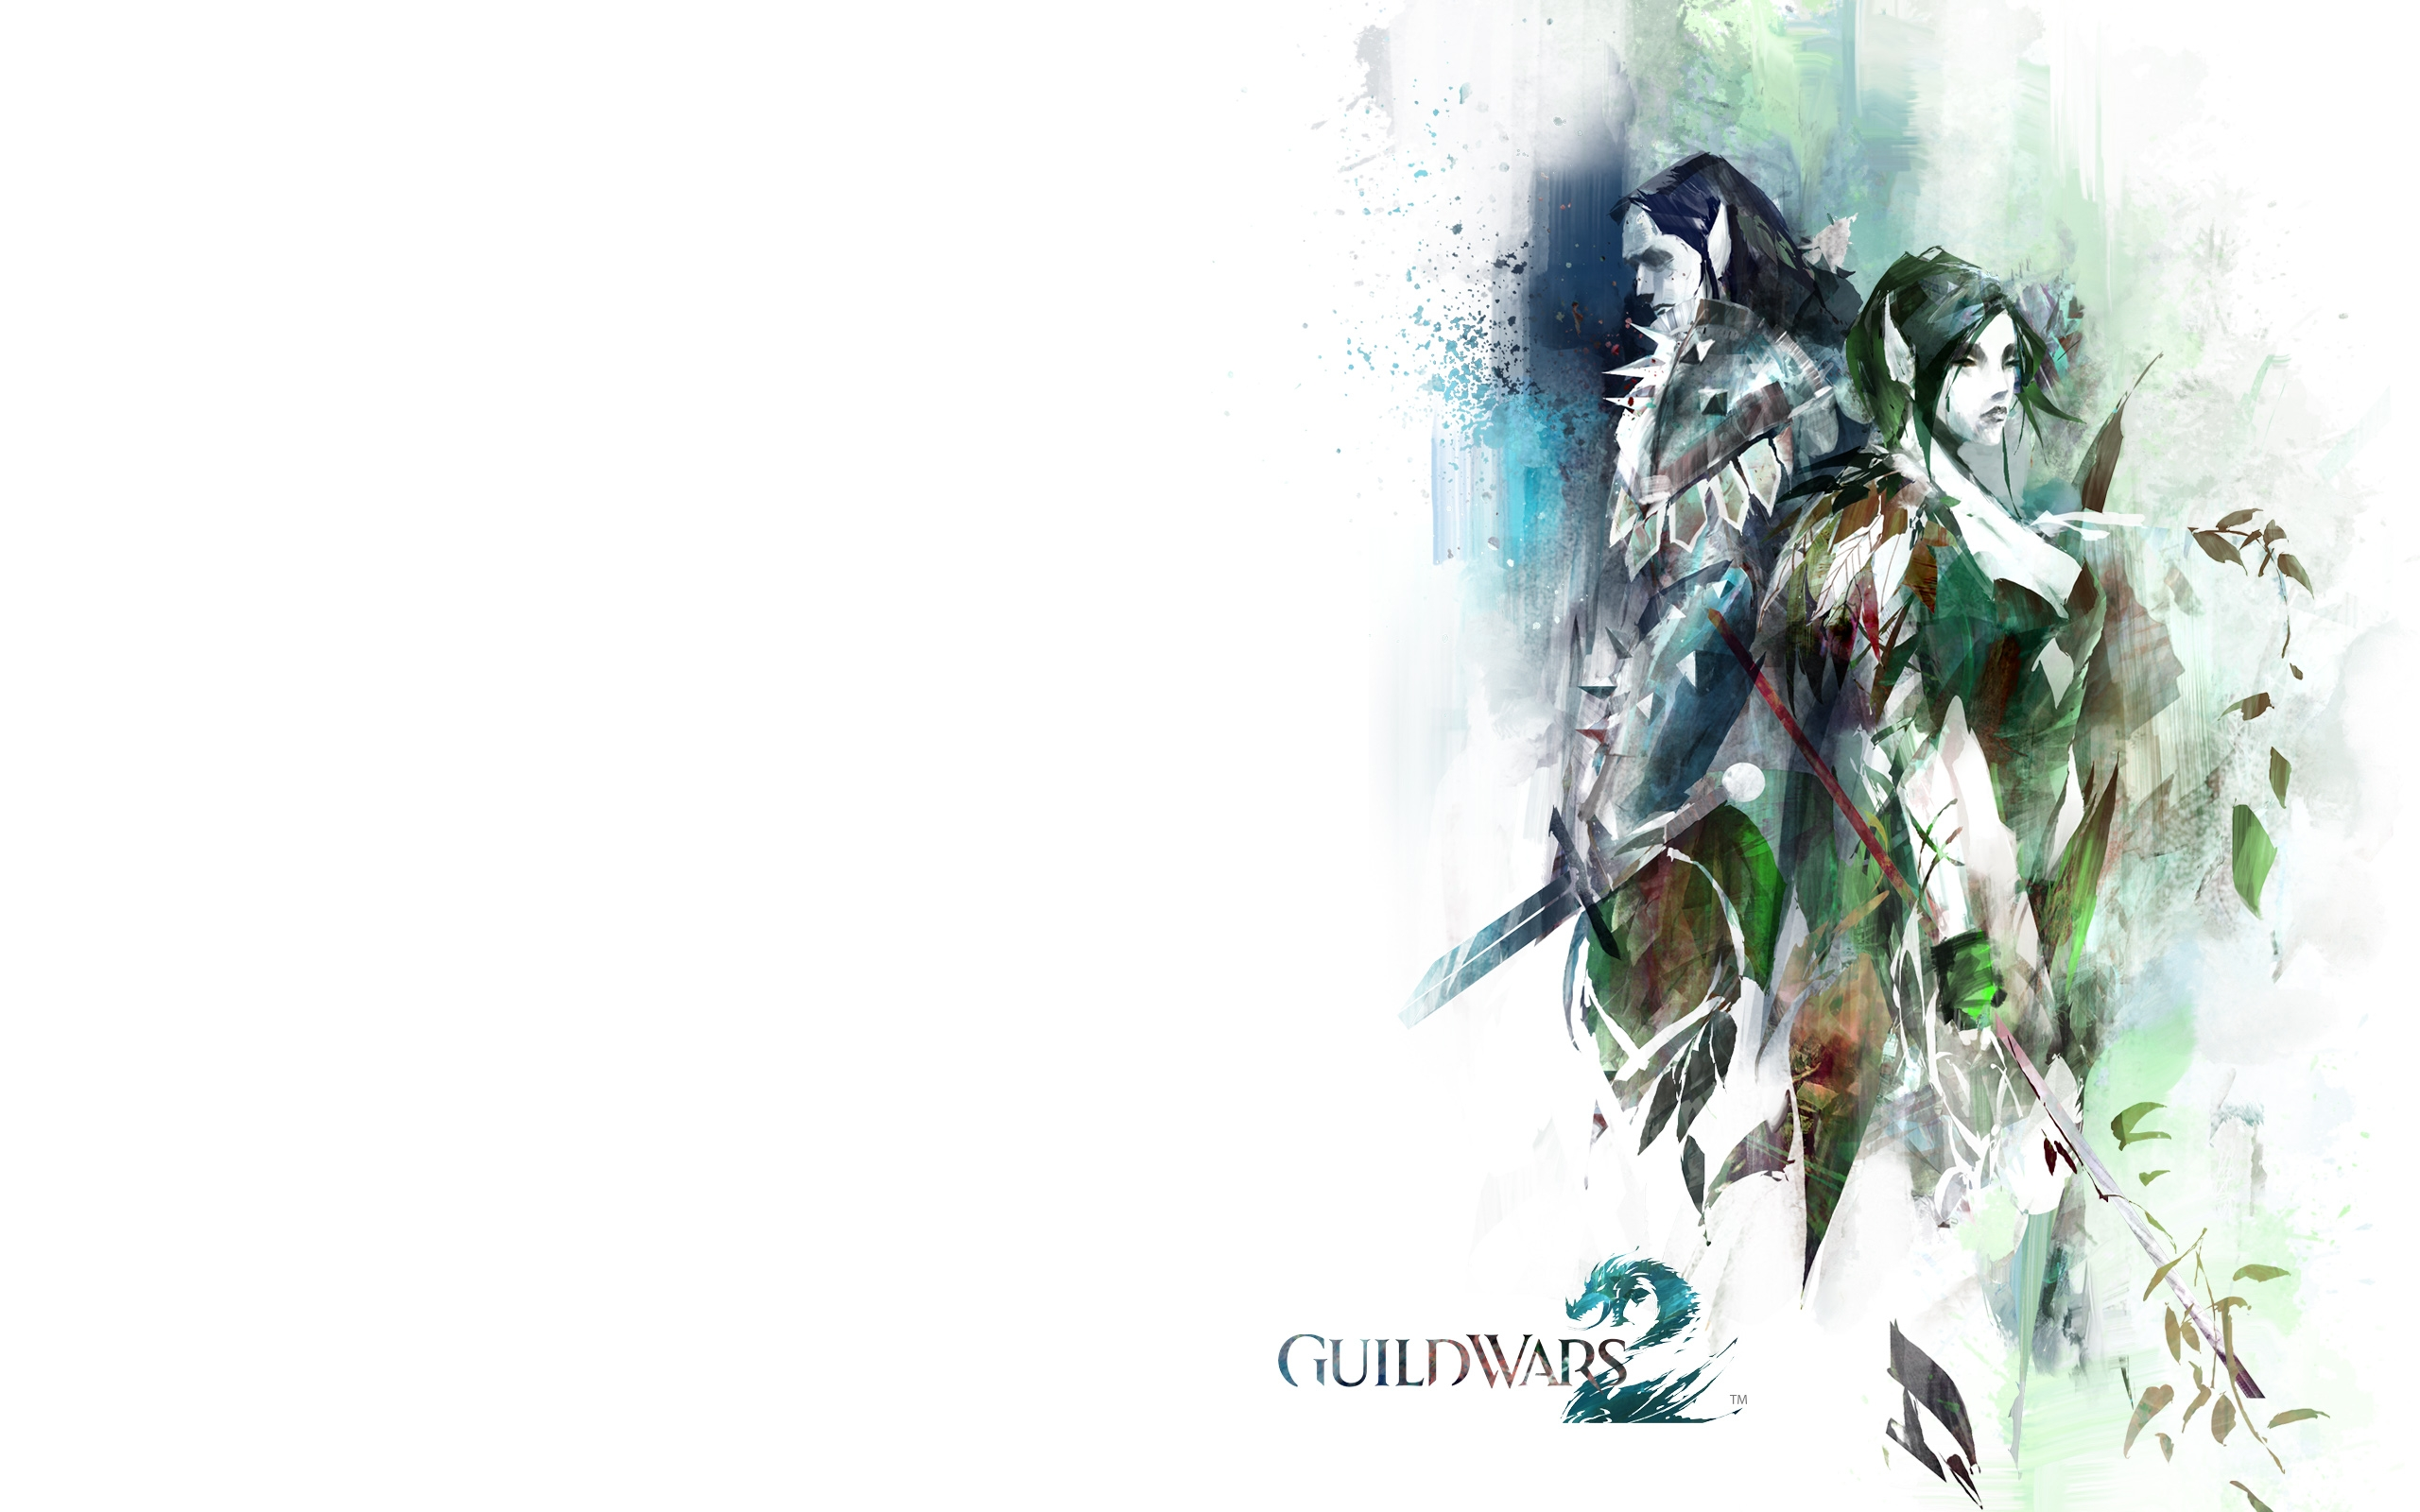 guild wars 2 wallpapers pictures images